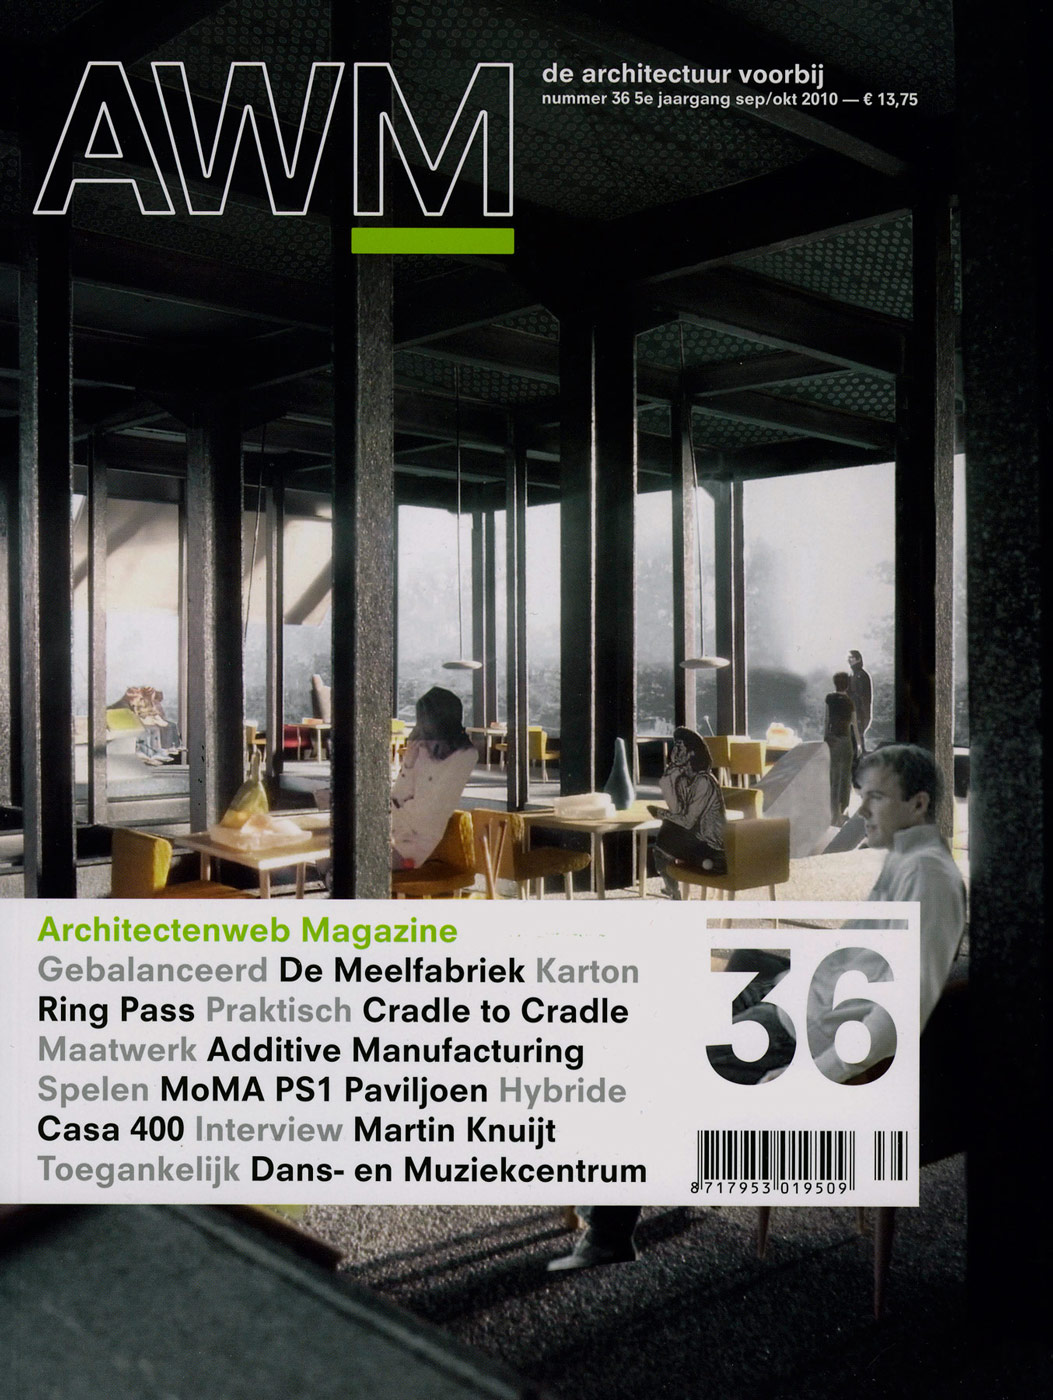 AWM_magazine_cover36_sept2010_solar